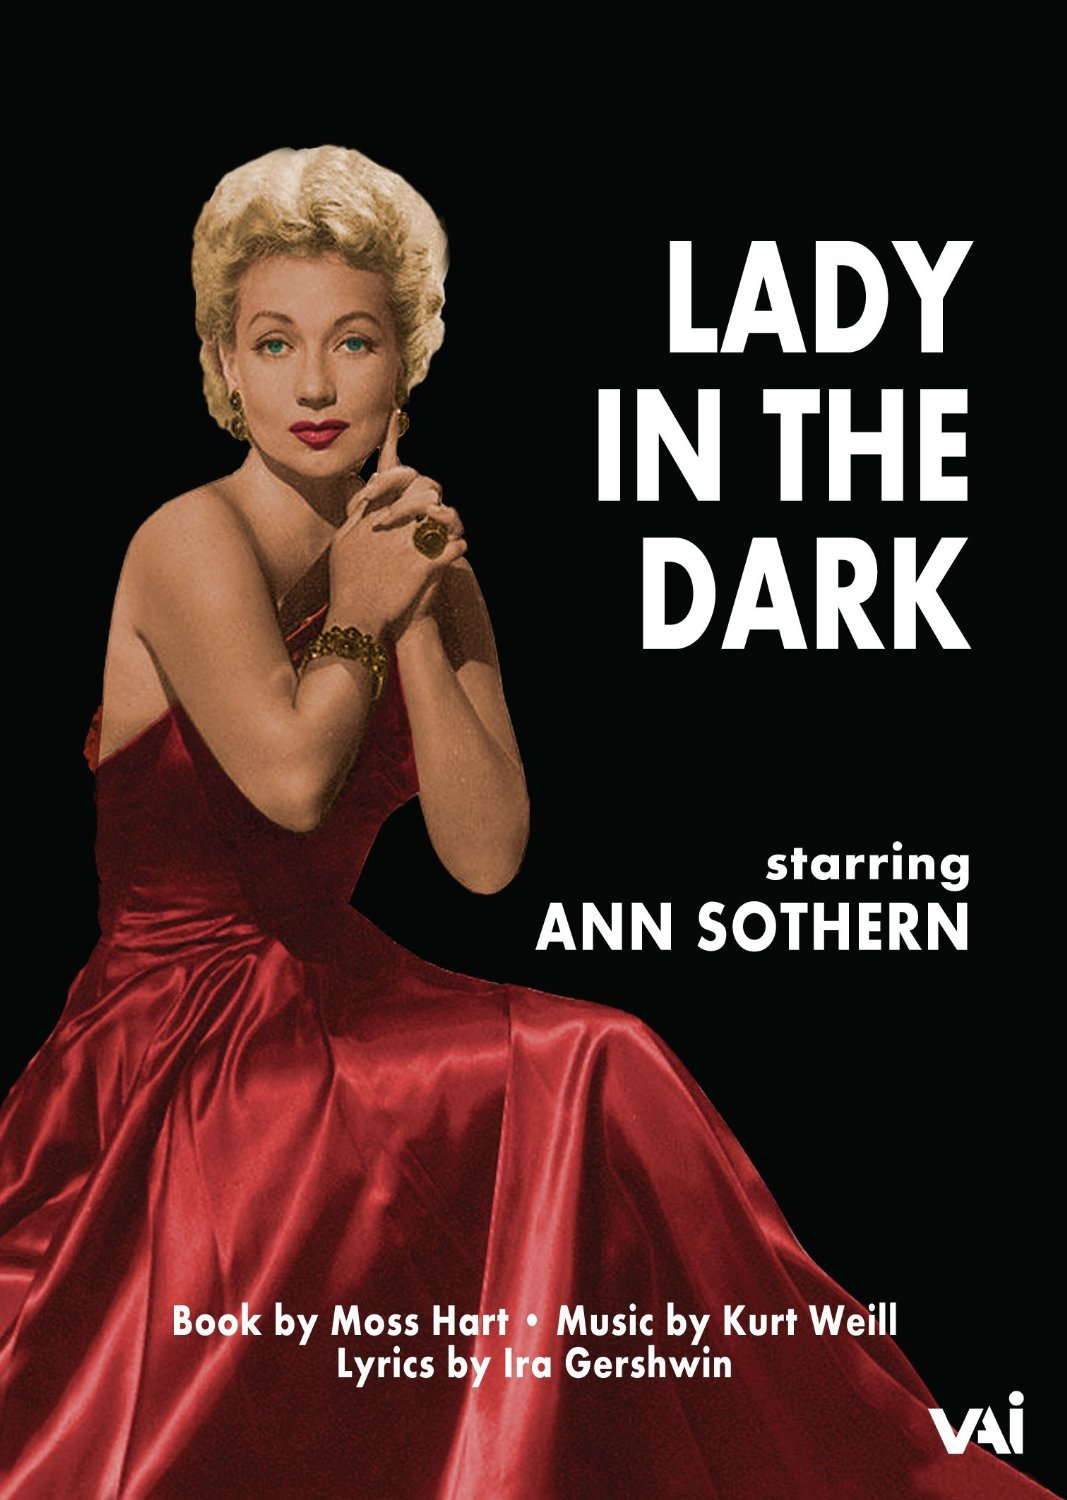 Lady in the Dark - 1954 TV Production